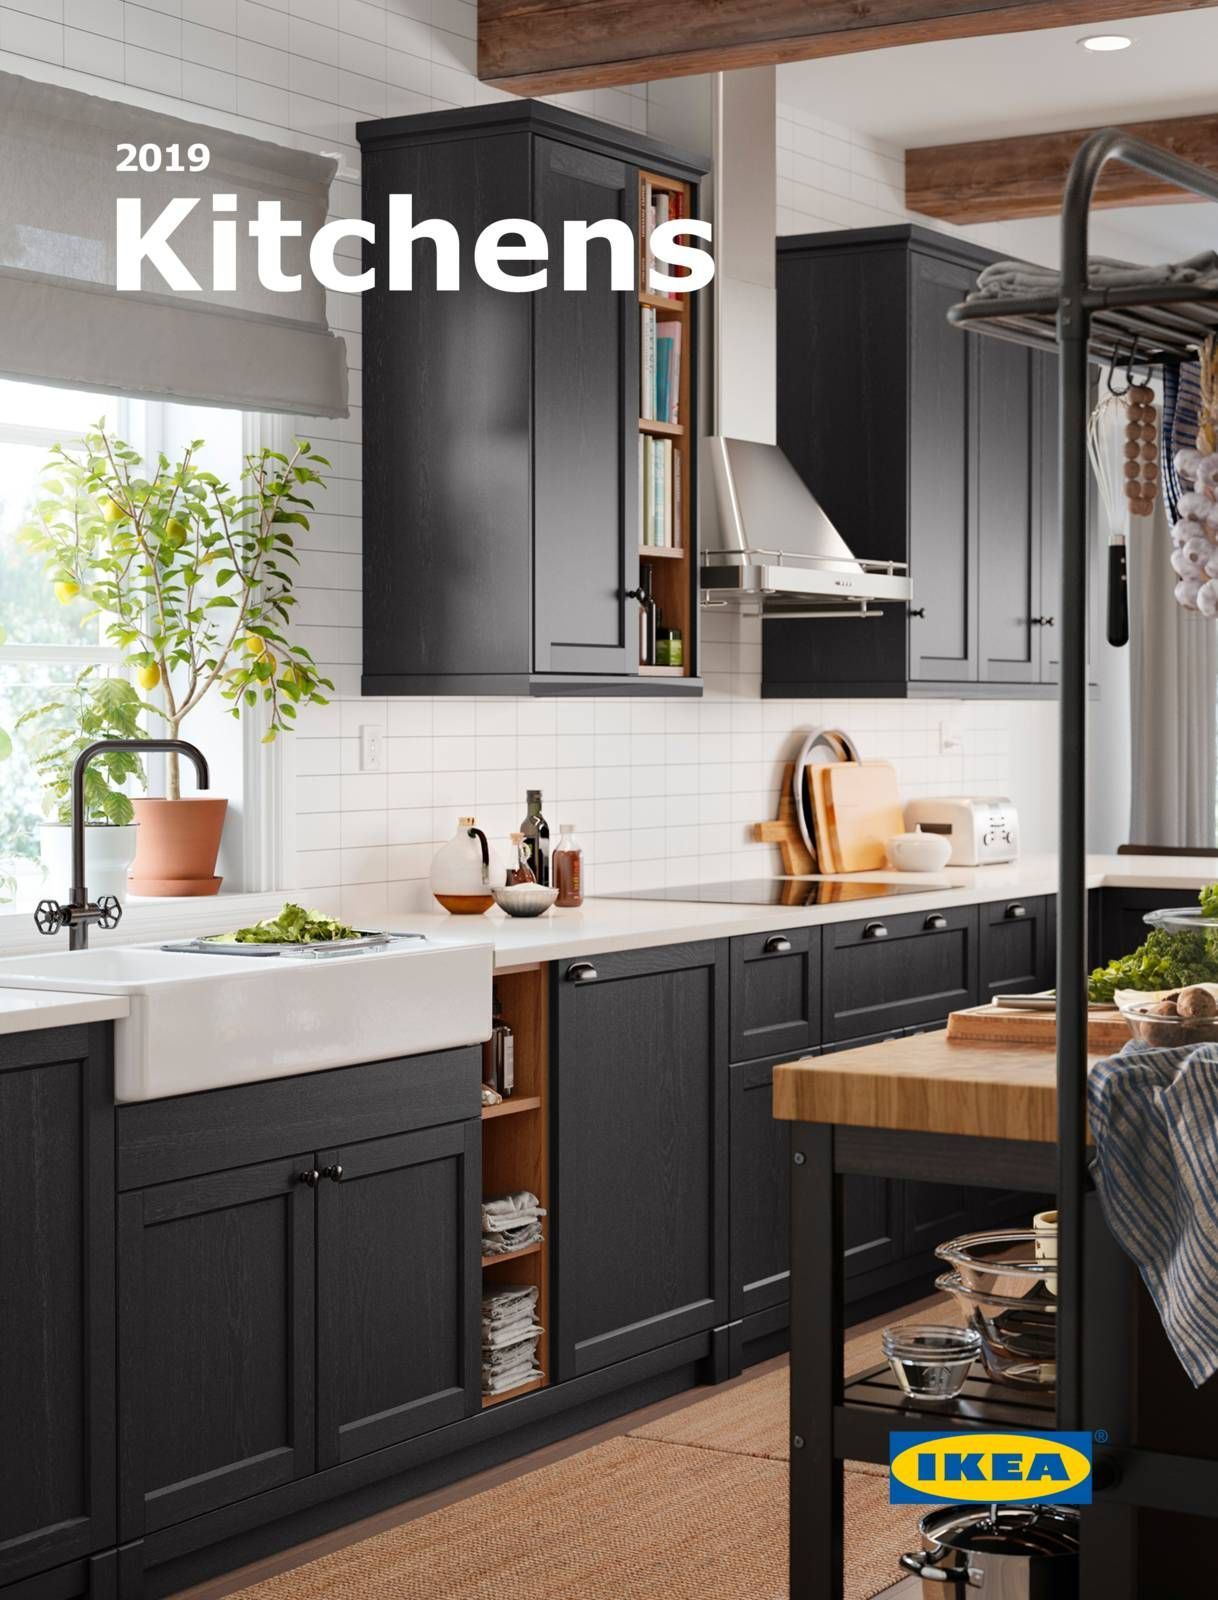 Best Kitchens 2019 Ikea Kitchen Brochure 2019 Black Ikea 400 x 300